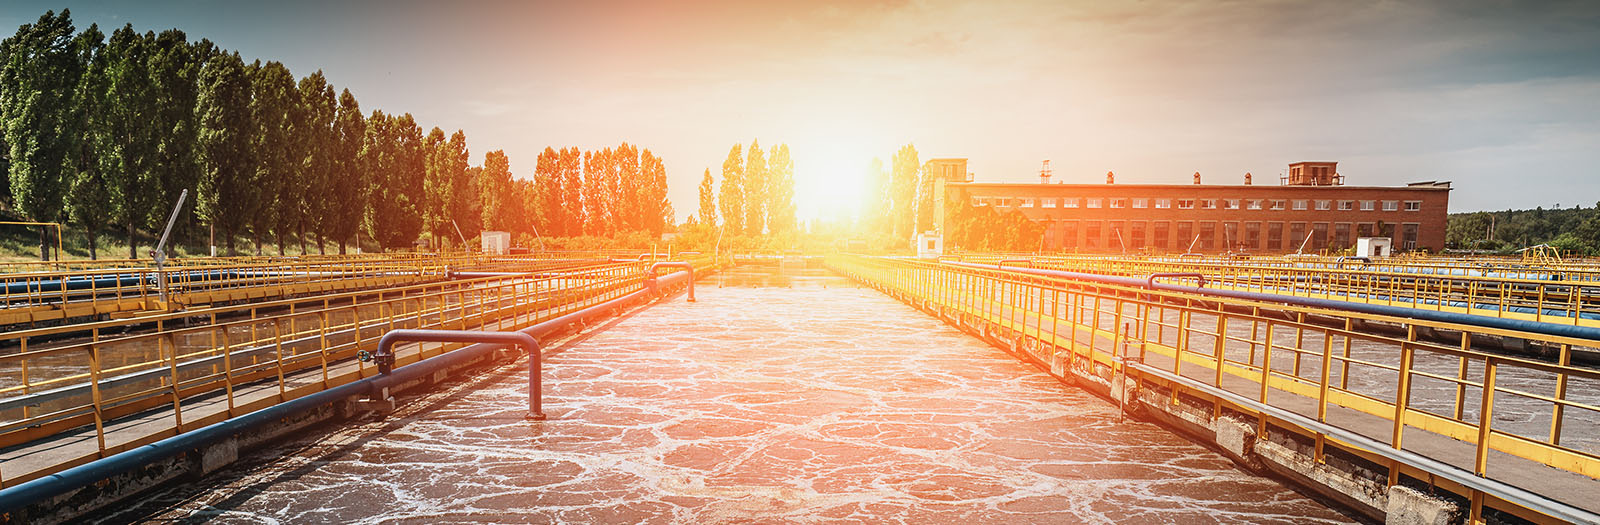 photo of wastewater treatment plant at sunset